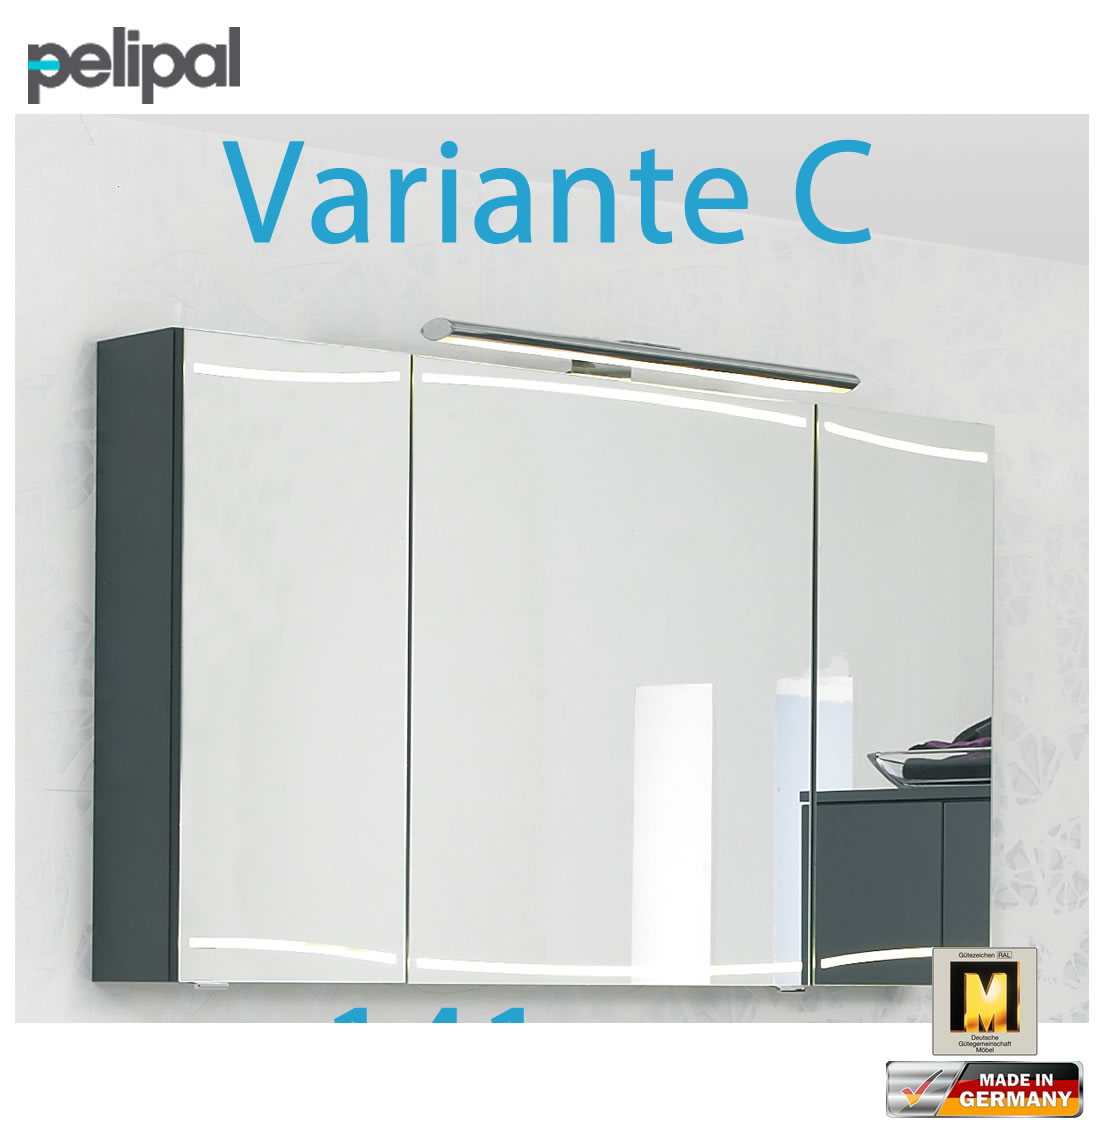 pelipal cassca spiegelschrank 140 cm cs sps 09 variante c impuls home. Black Bedroom Furniture Sets. Home Design Ideas